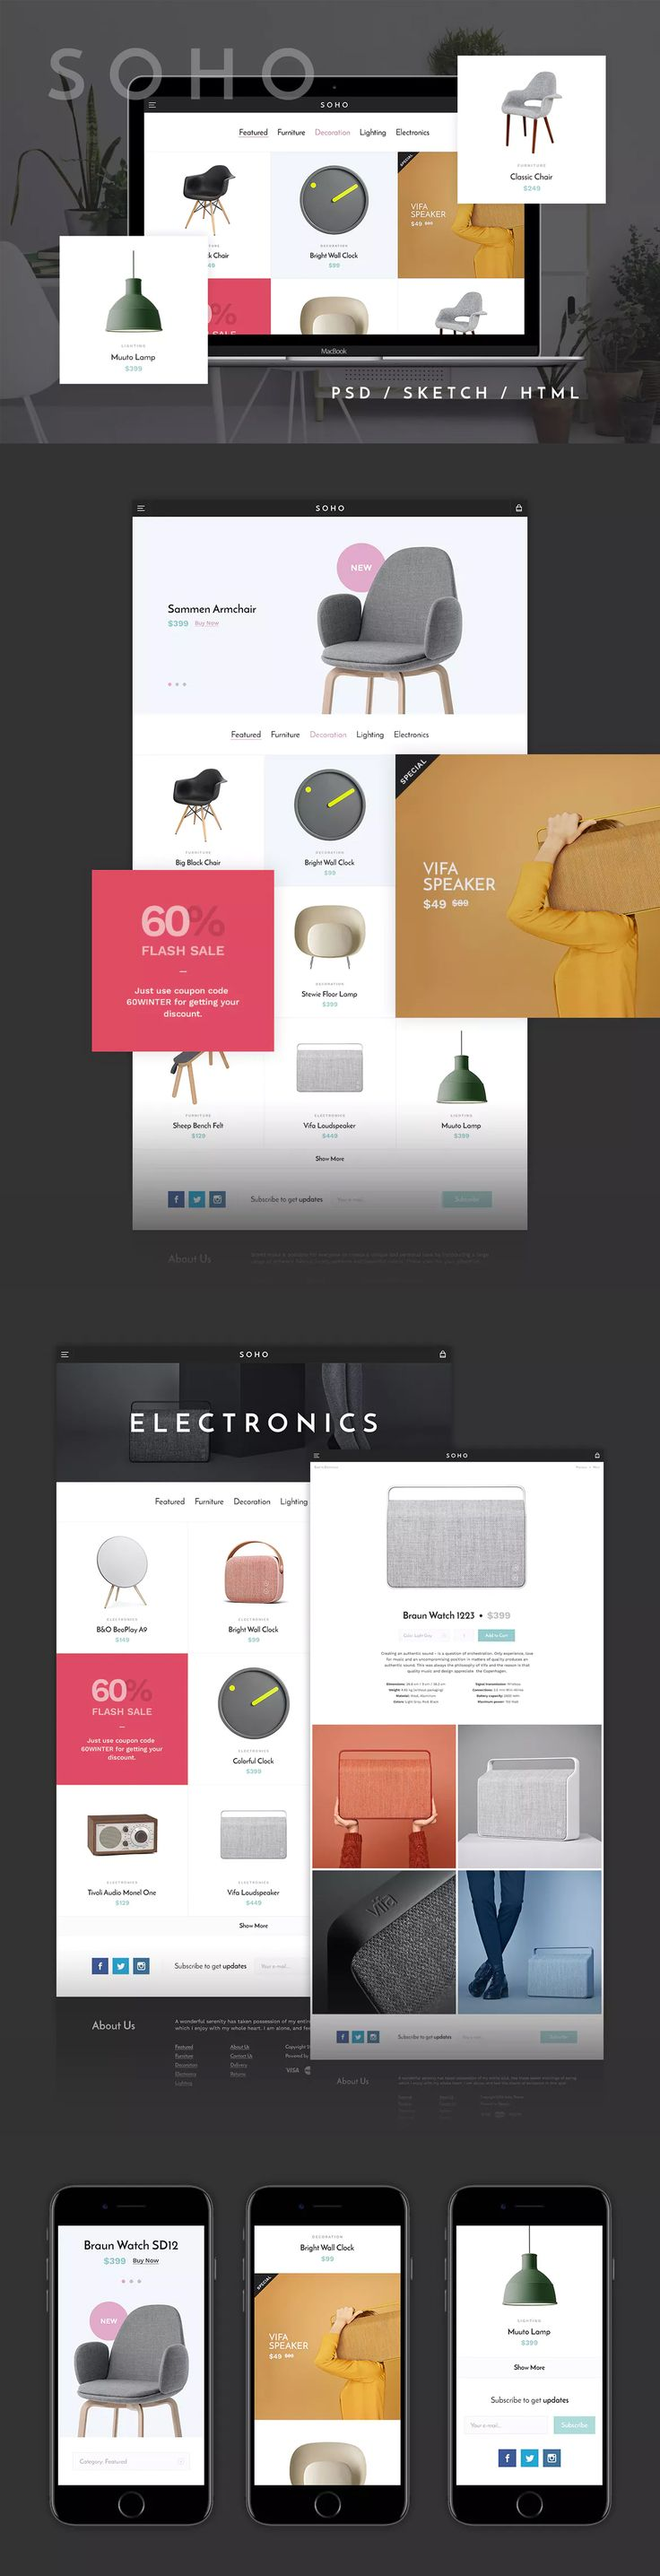 31 best HTML Website Templates images on Pinterest | Charity, Html ...